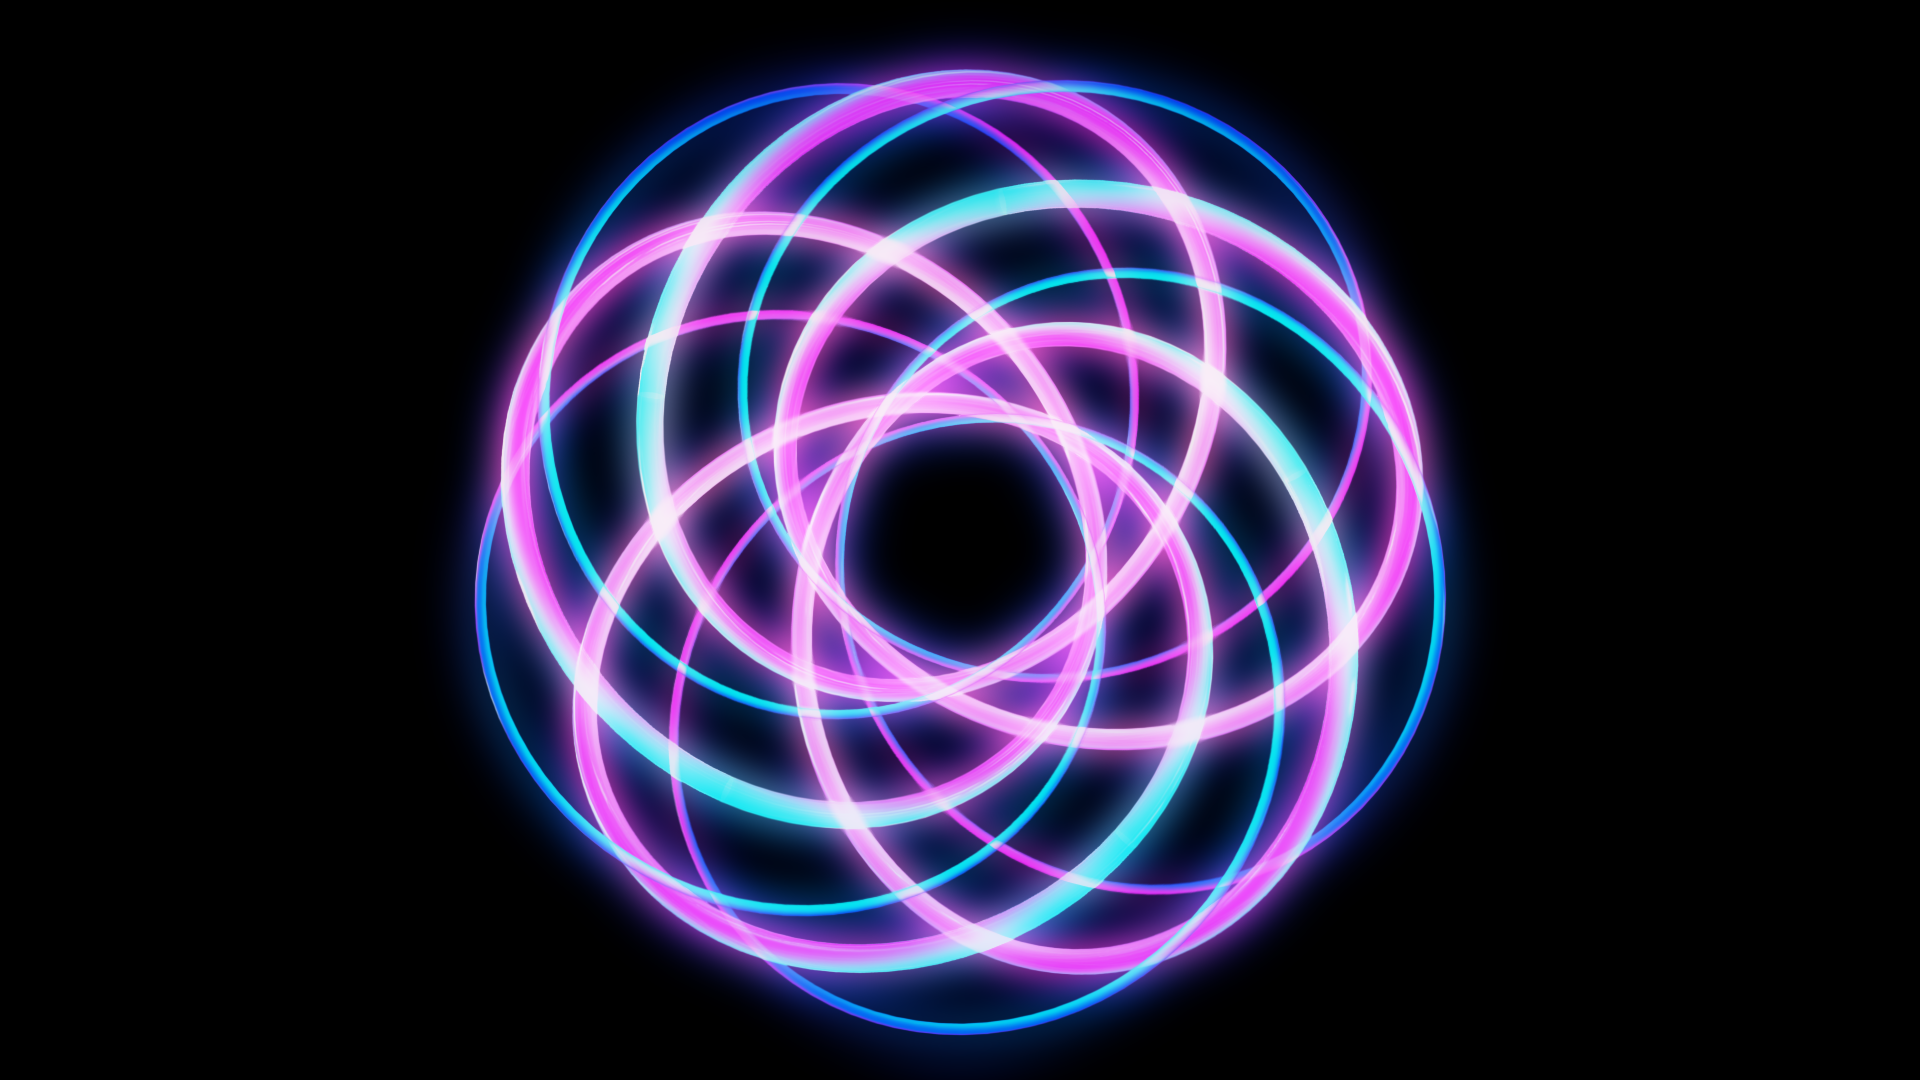 Shapeshifters is a set of 50 VJ Loops - 3D shapes and forms